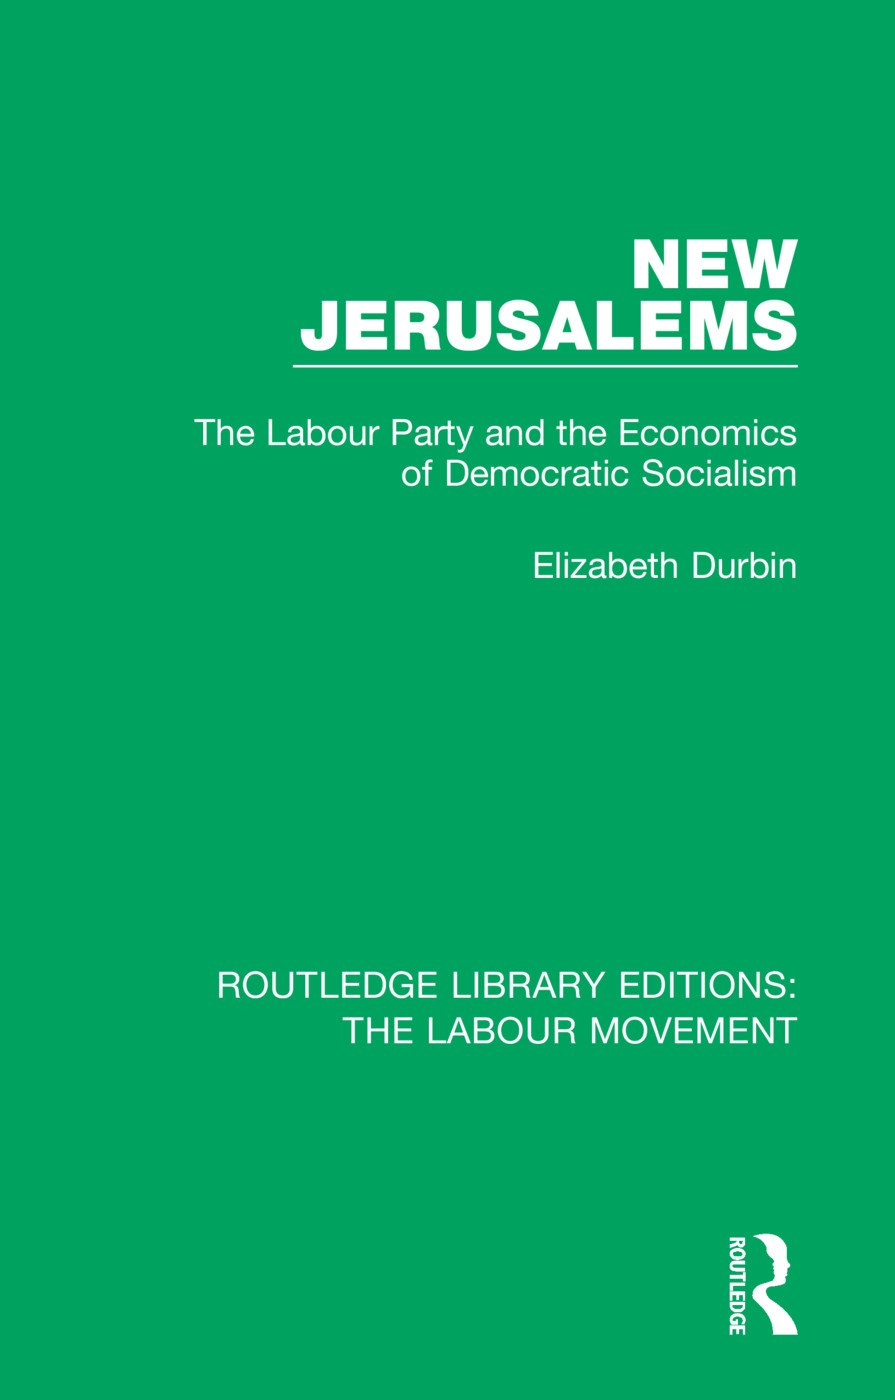 New Jerusalems: The Labour Party and the Economics of Democratic Socialism book cover